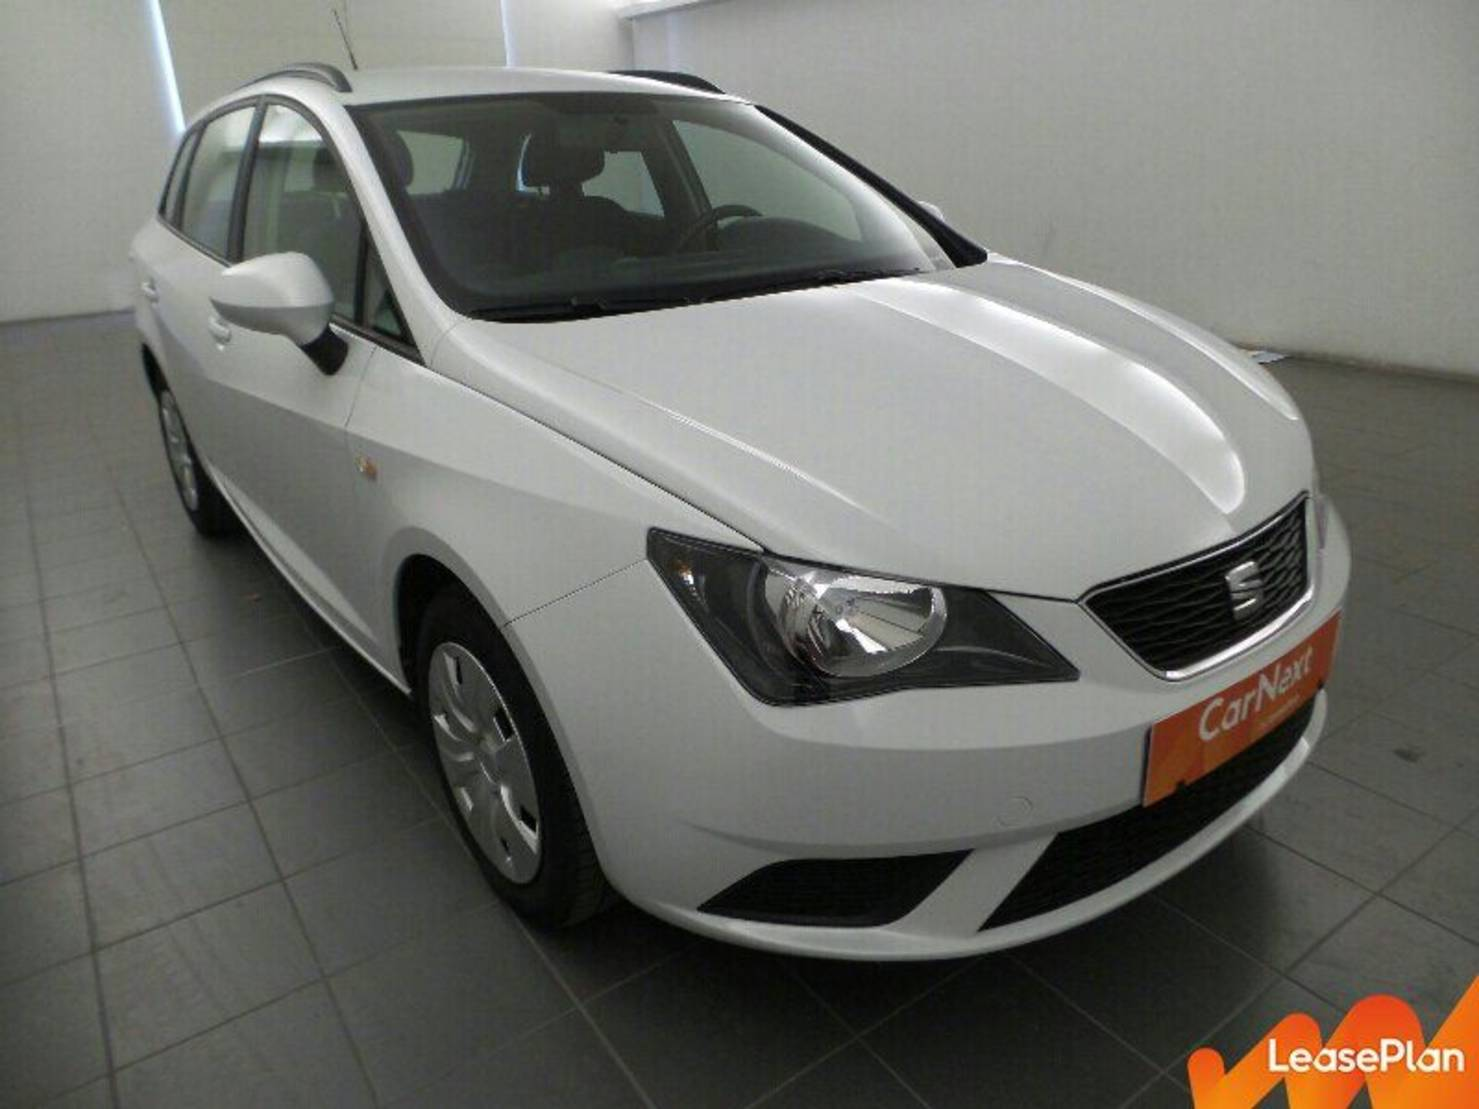 Seat Ibiza 1.6 TDI CR 90 ch REFERENCE BUSINESS detail2